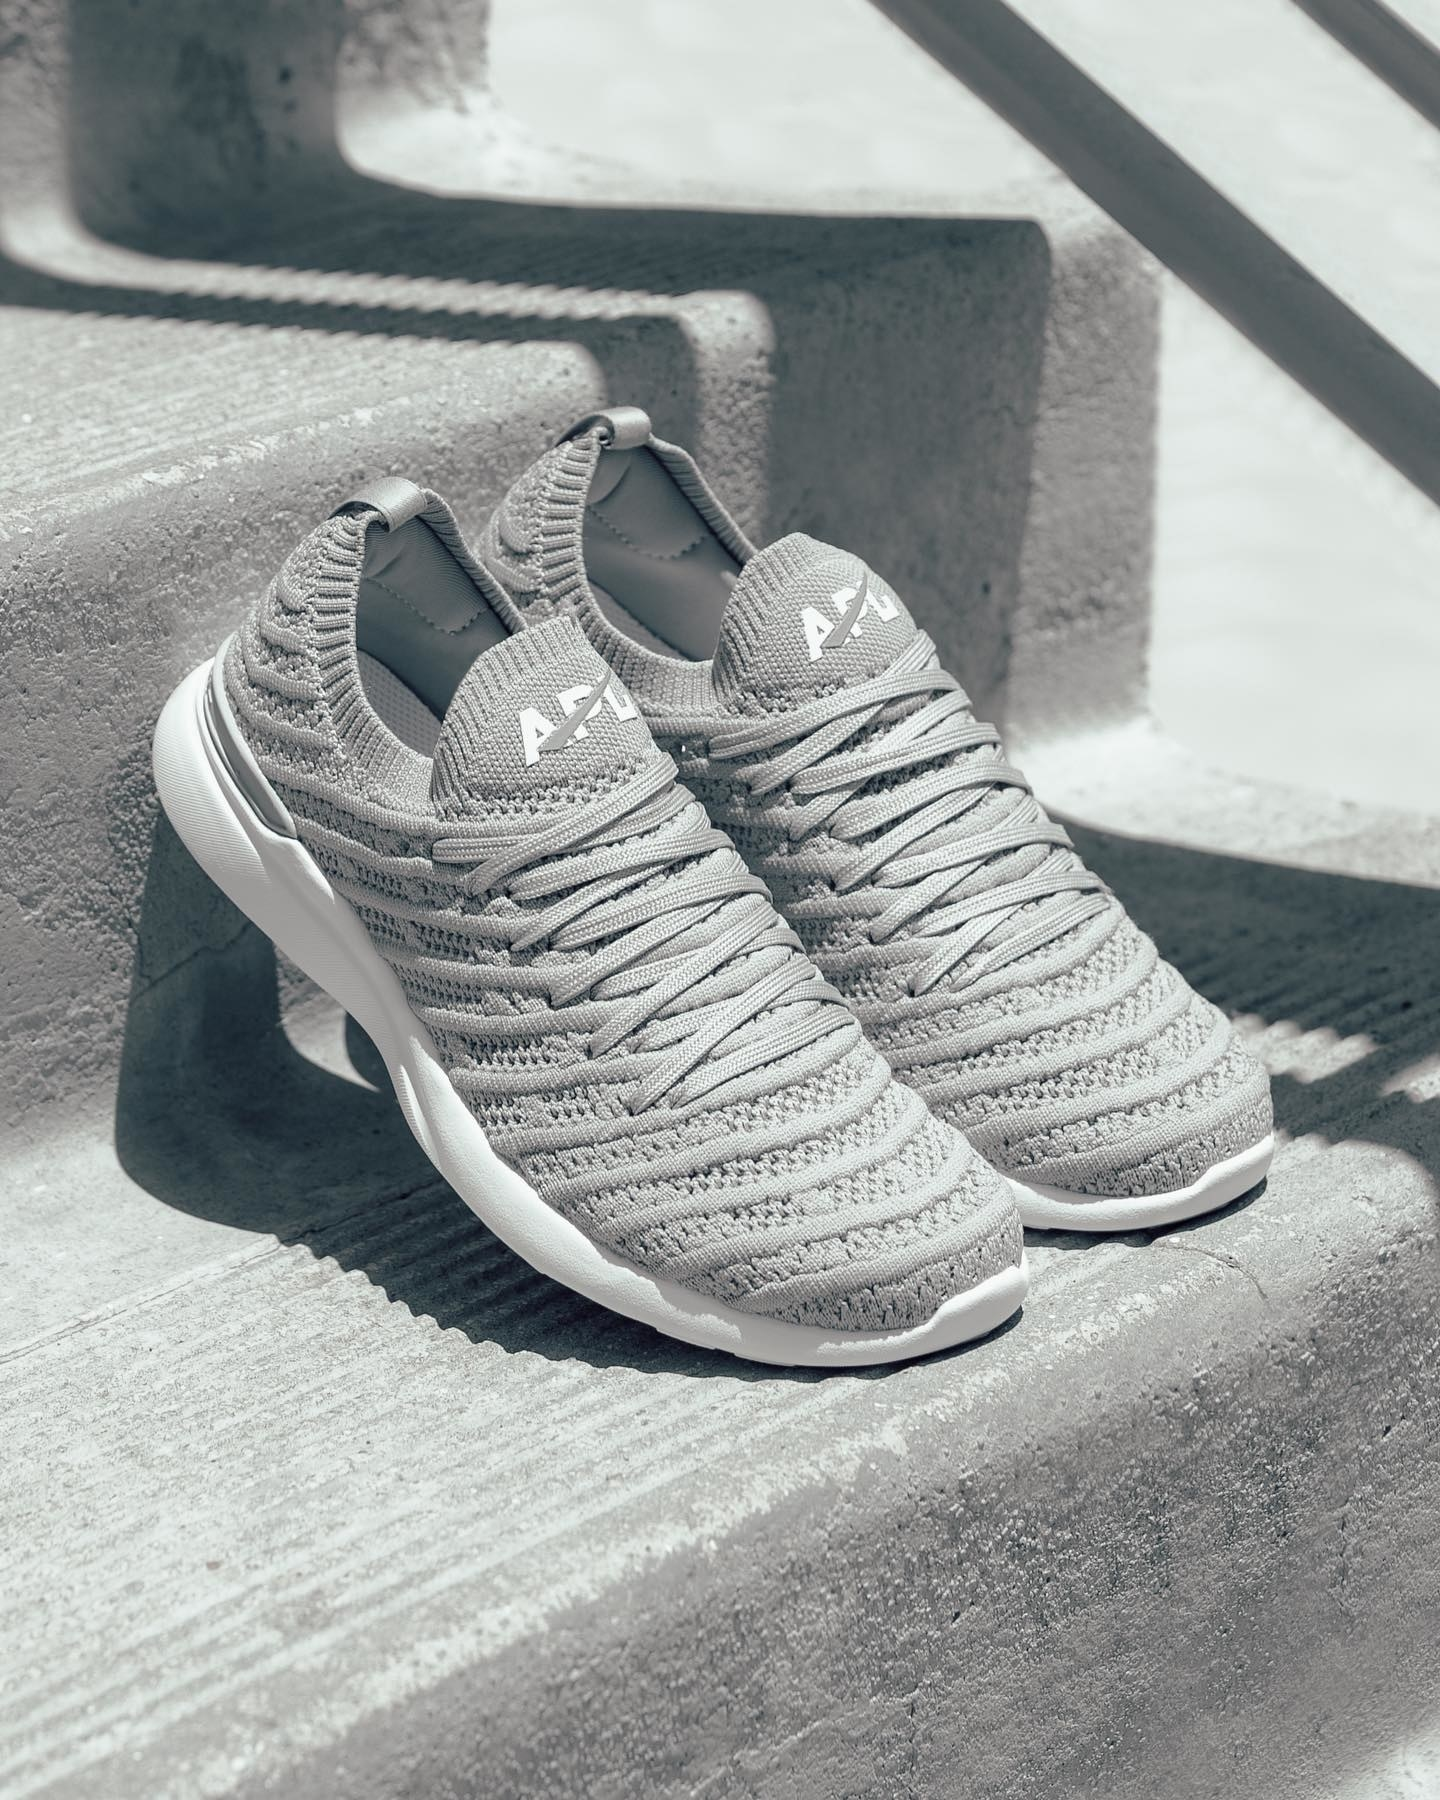 The knit sneakers in grey with grey laces and white soles